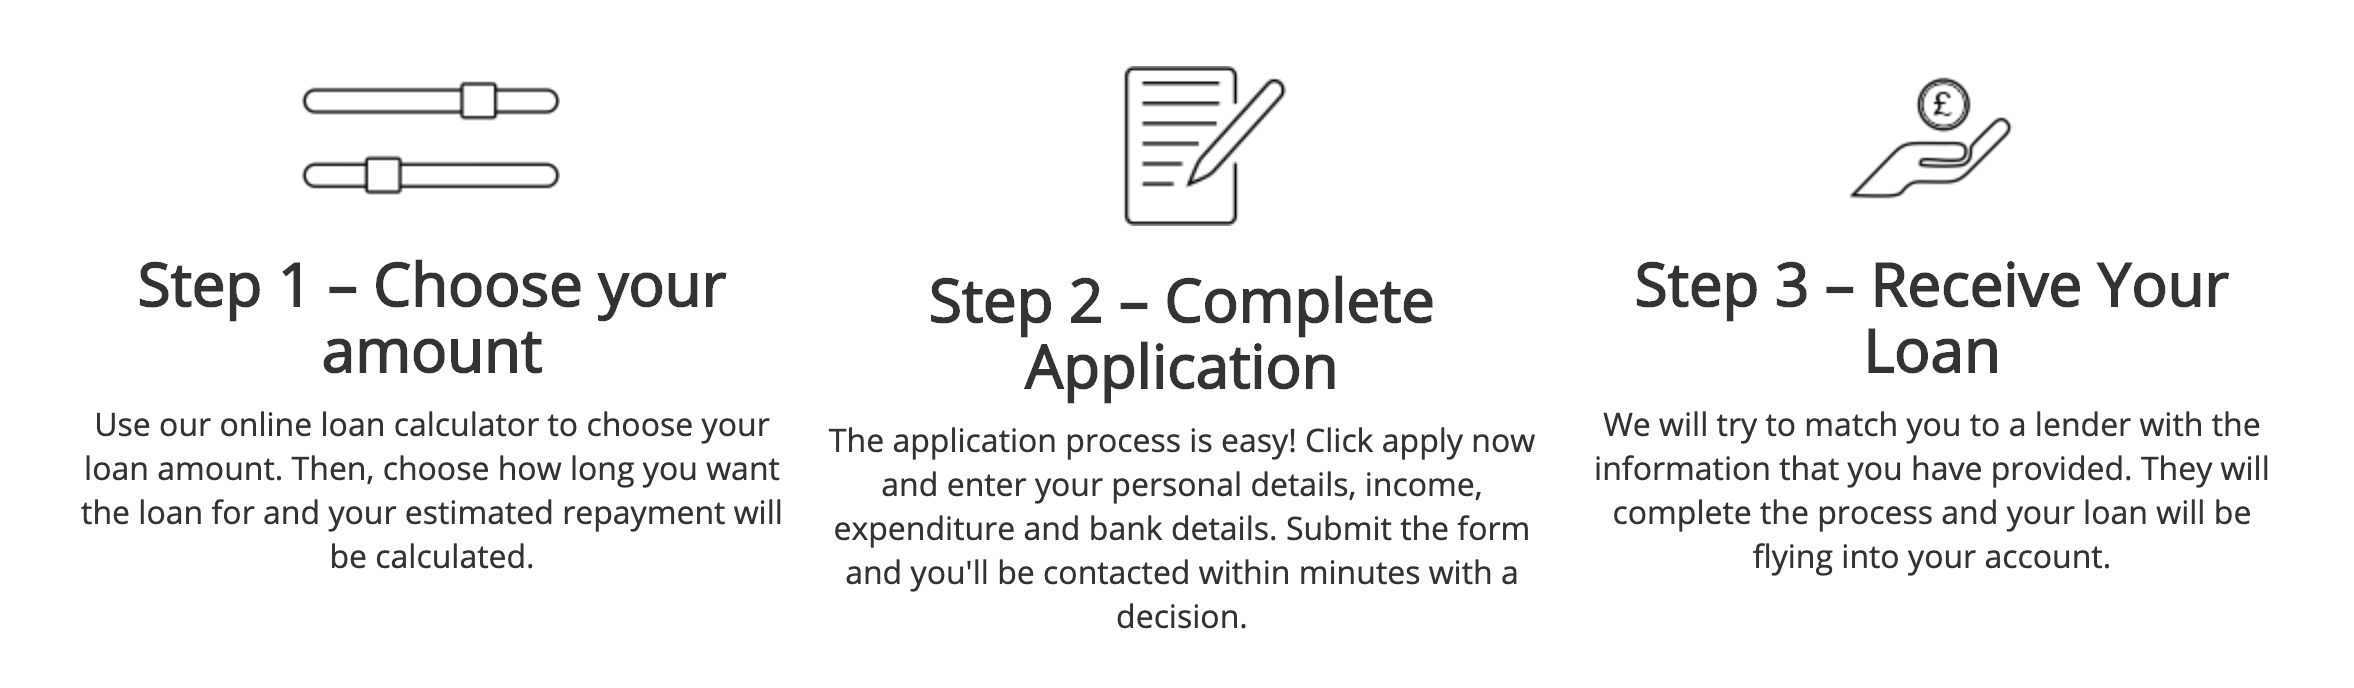 PMLoans Application Process